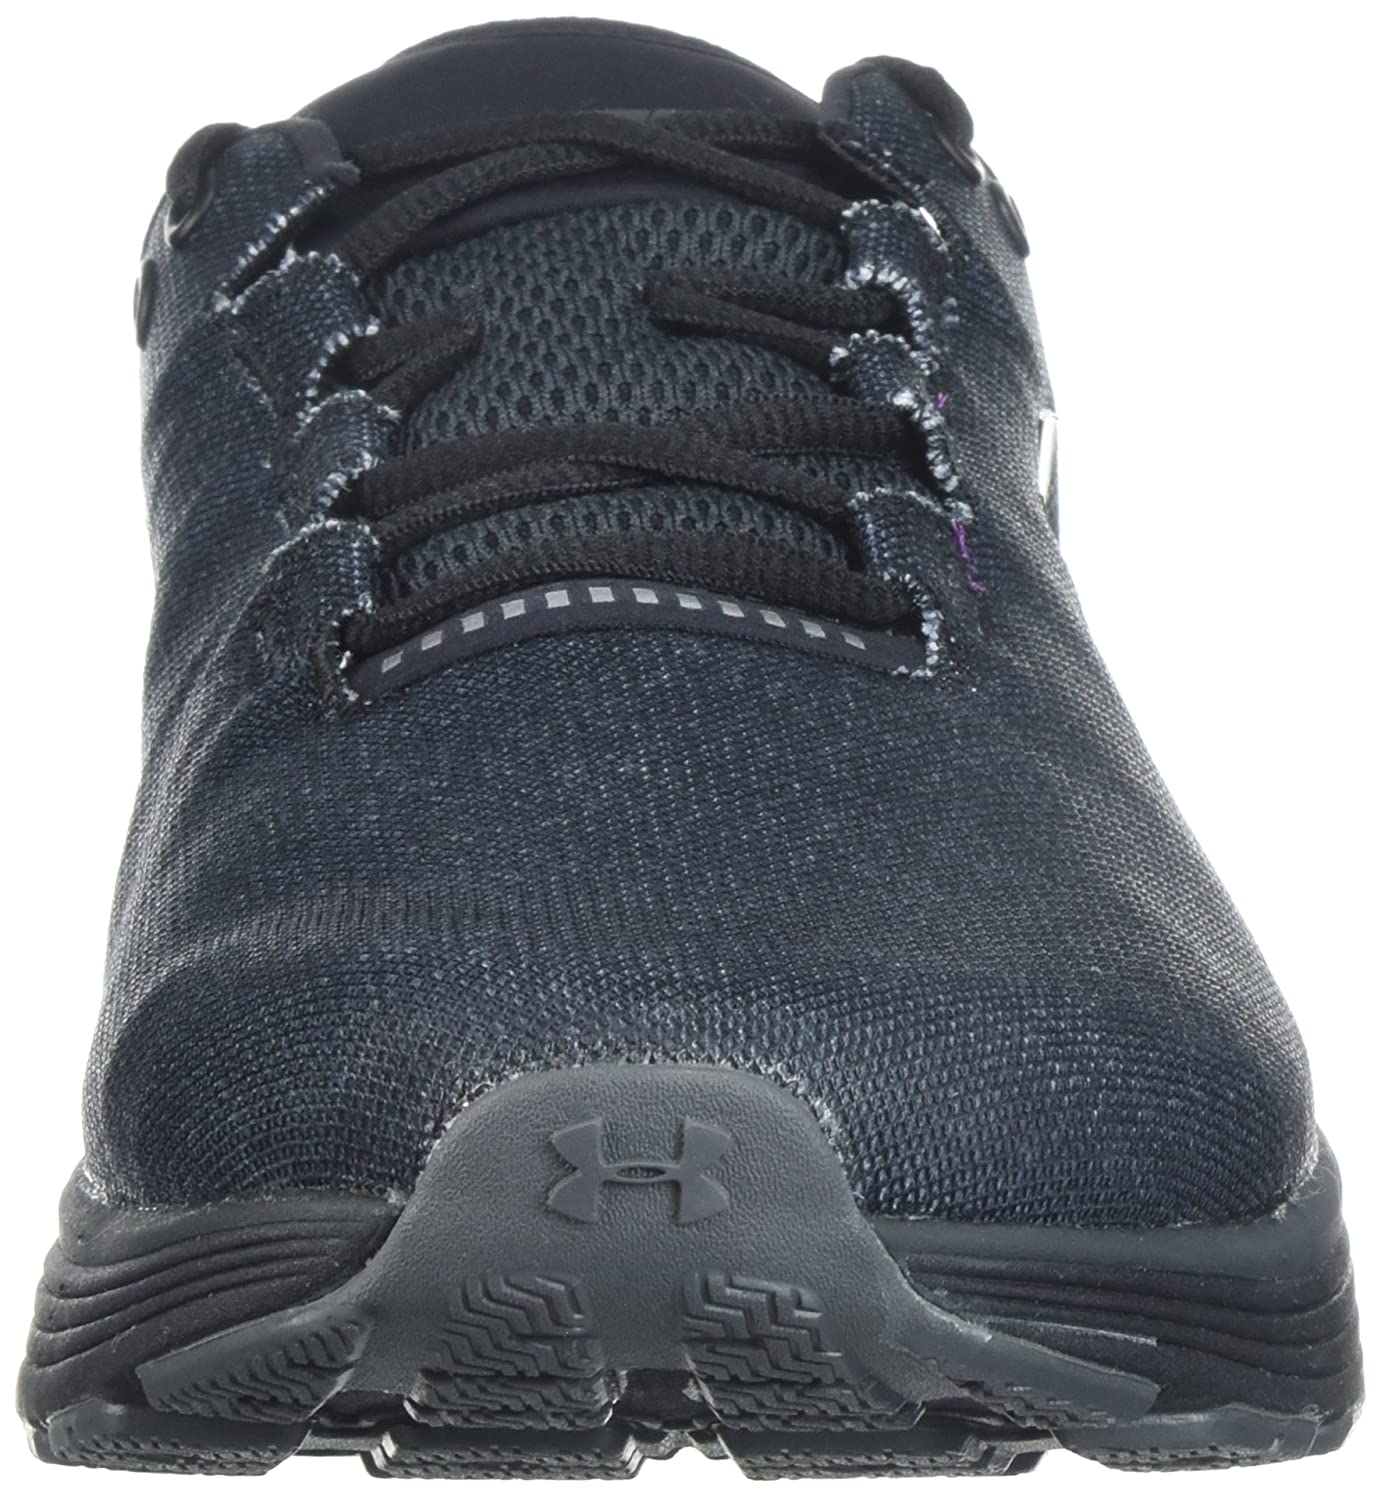 Under Armour Women's Charged B072J3RSC5 Bandit 3 Running Shoe B072J3RSC5 Charged 8 M US|Black (009)/Stealth Gray aa8c81